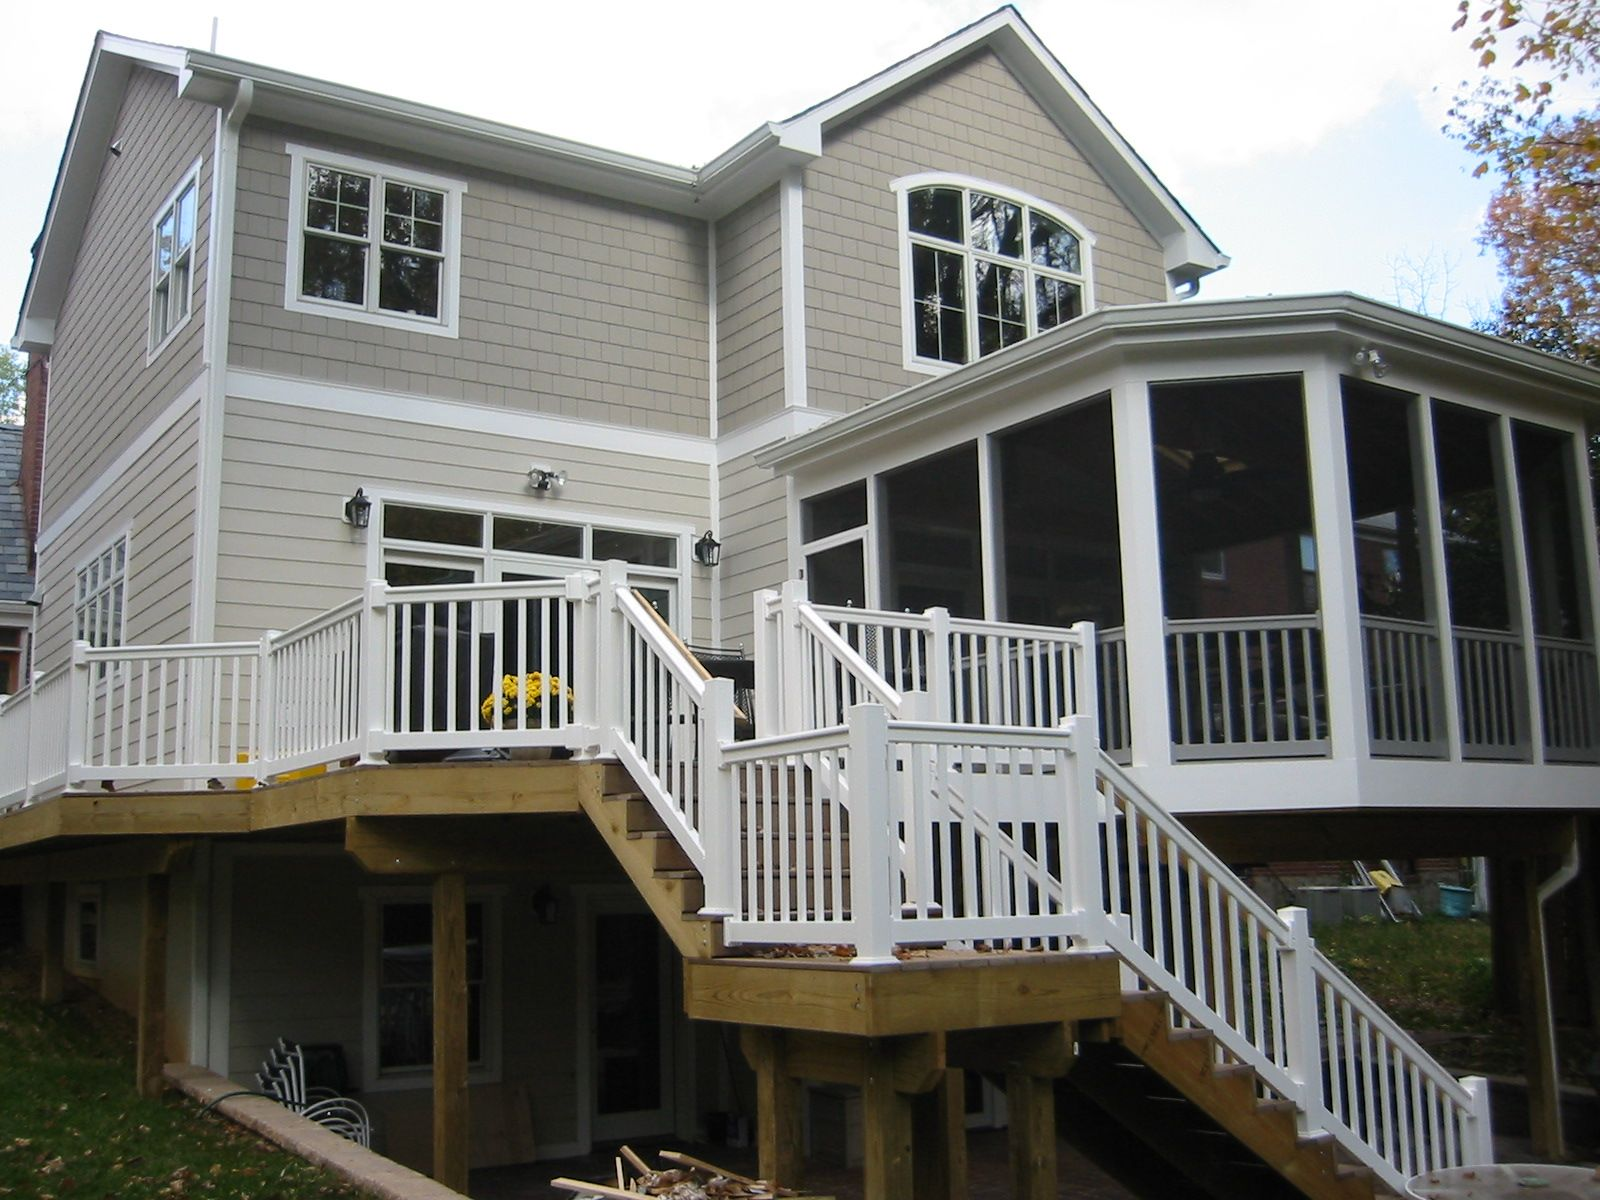 Colonial Remodeling james hardie siding installedcolonial remodeling | james